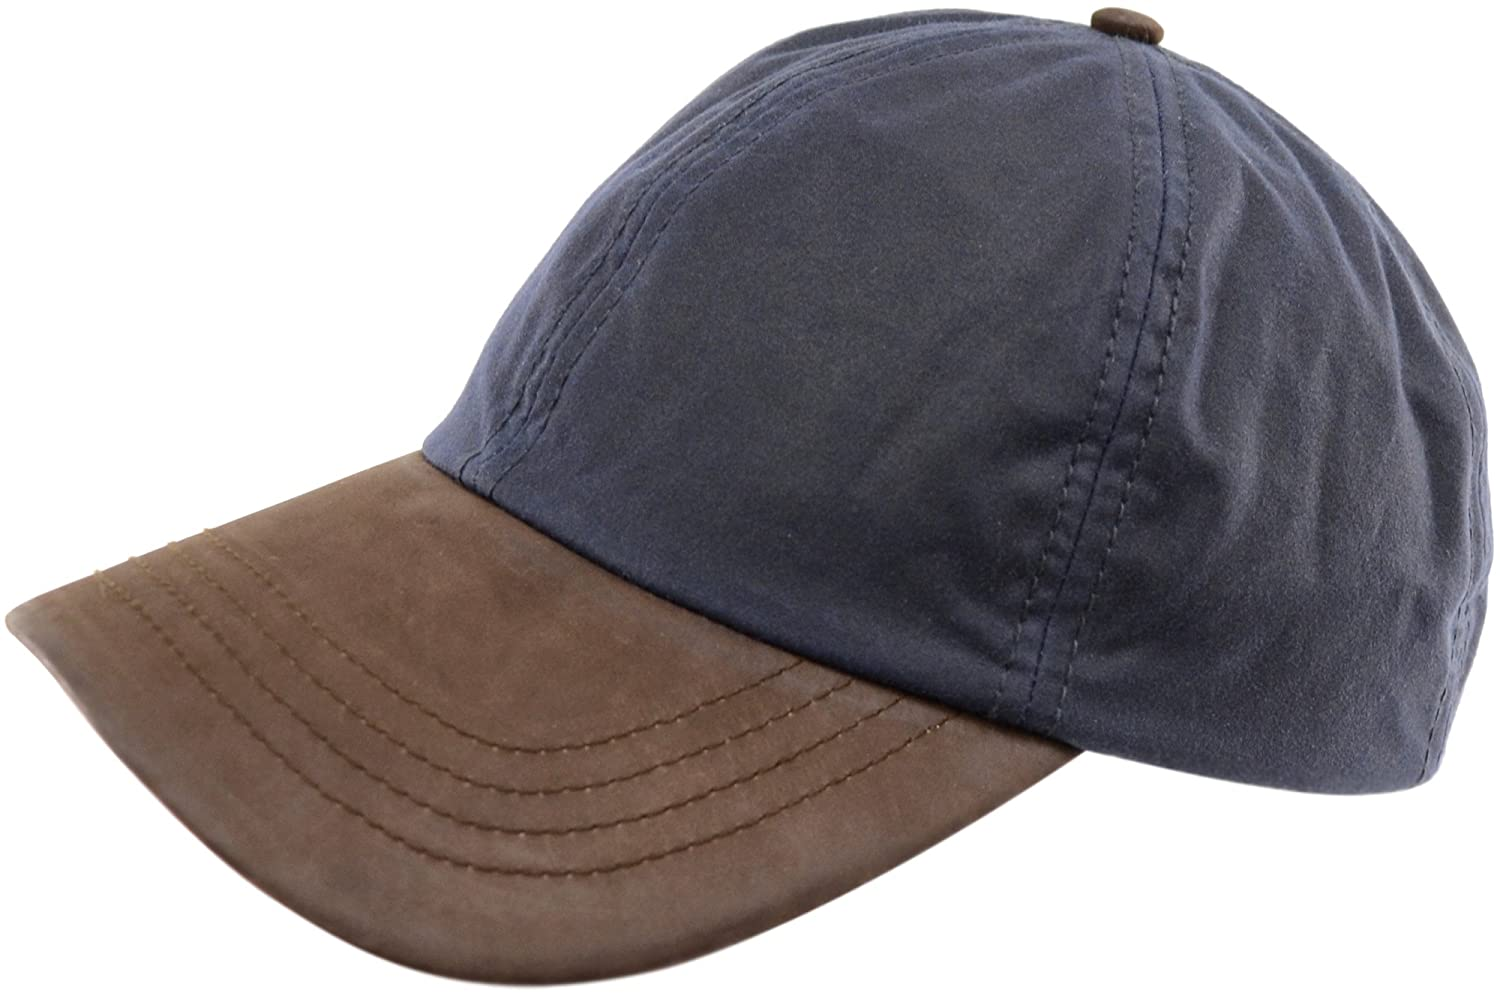 Mens Gents Wax Waterproof Baseball Cap Hat with Leather Peak. Made in the  UK - Navy  Amazon.co.uk  Shoes   Bags 848ed127999